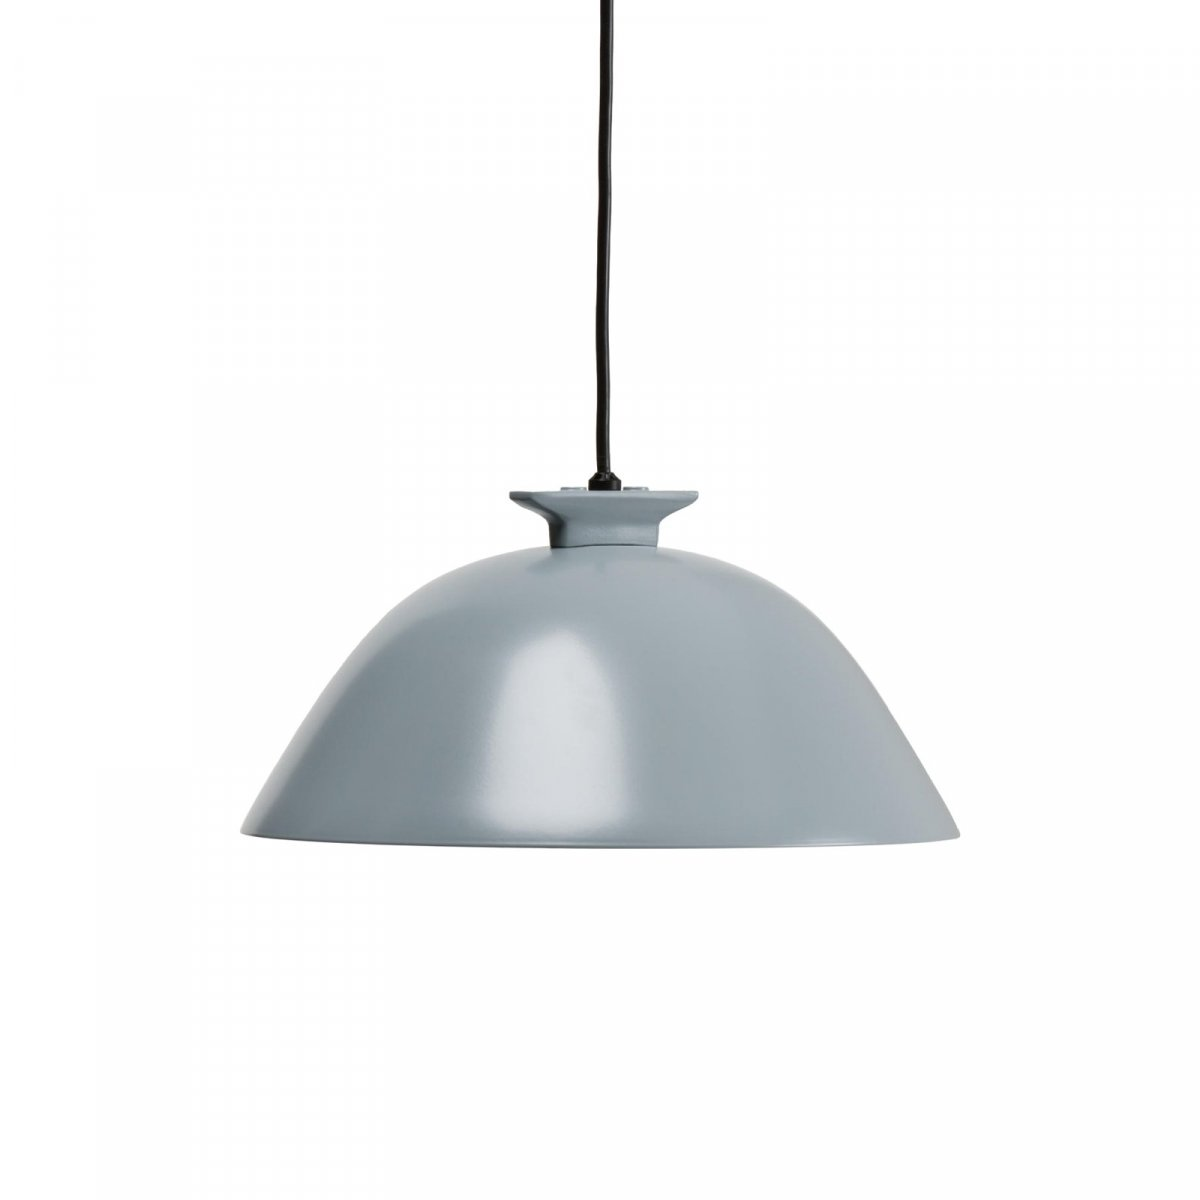 w103 Sempé s1 pendant lamp, soft grey.